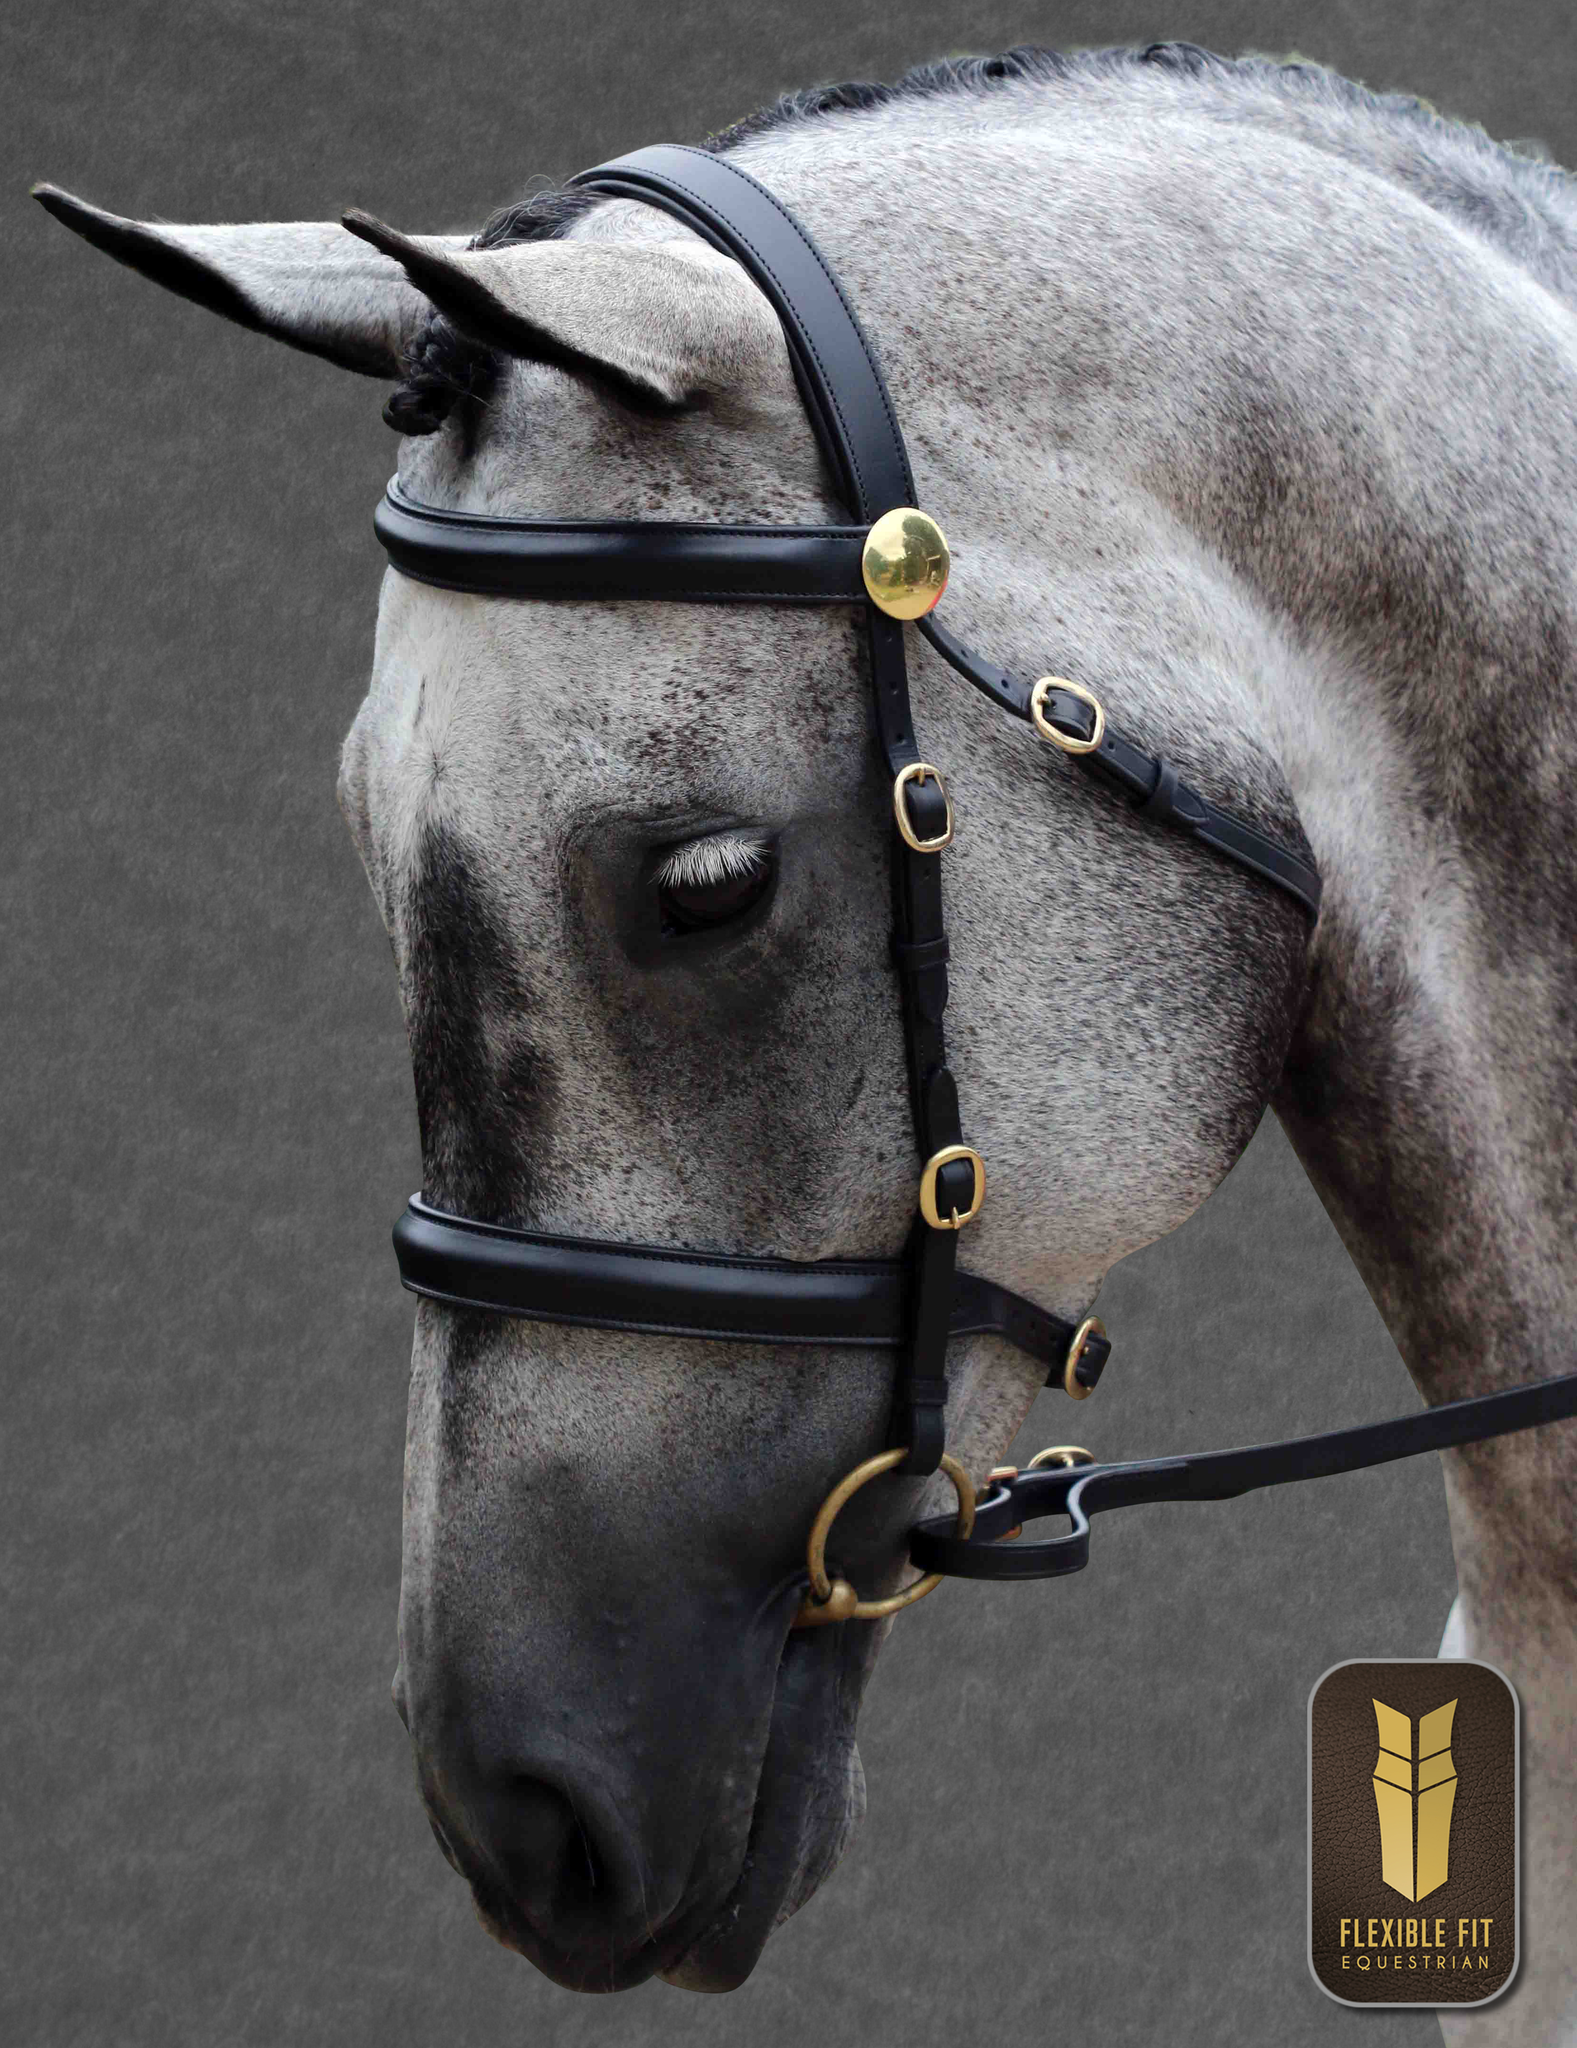 BLACK IN HAND BRIDLE BRASS FITTINGS RAISED BROWBAND - RAISED NOSEBAND